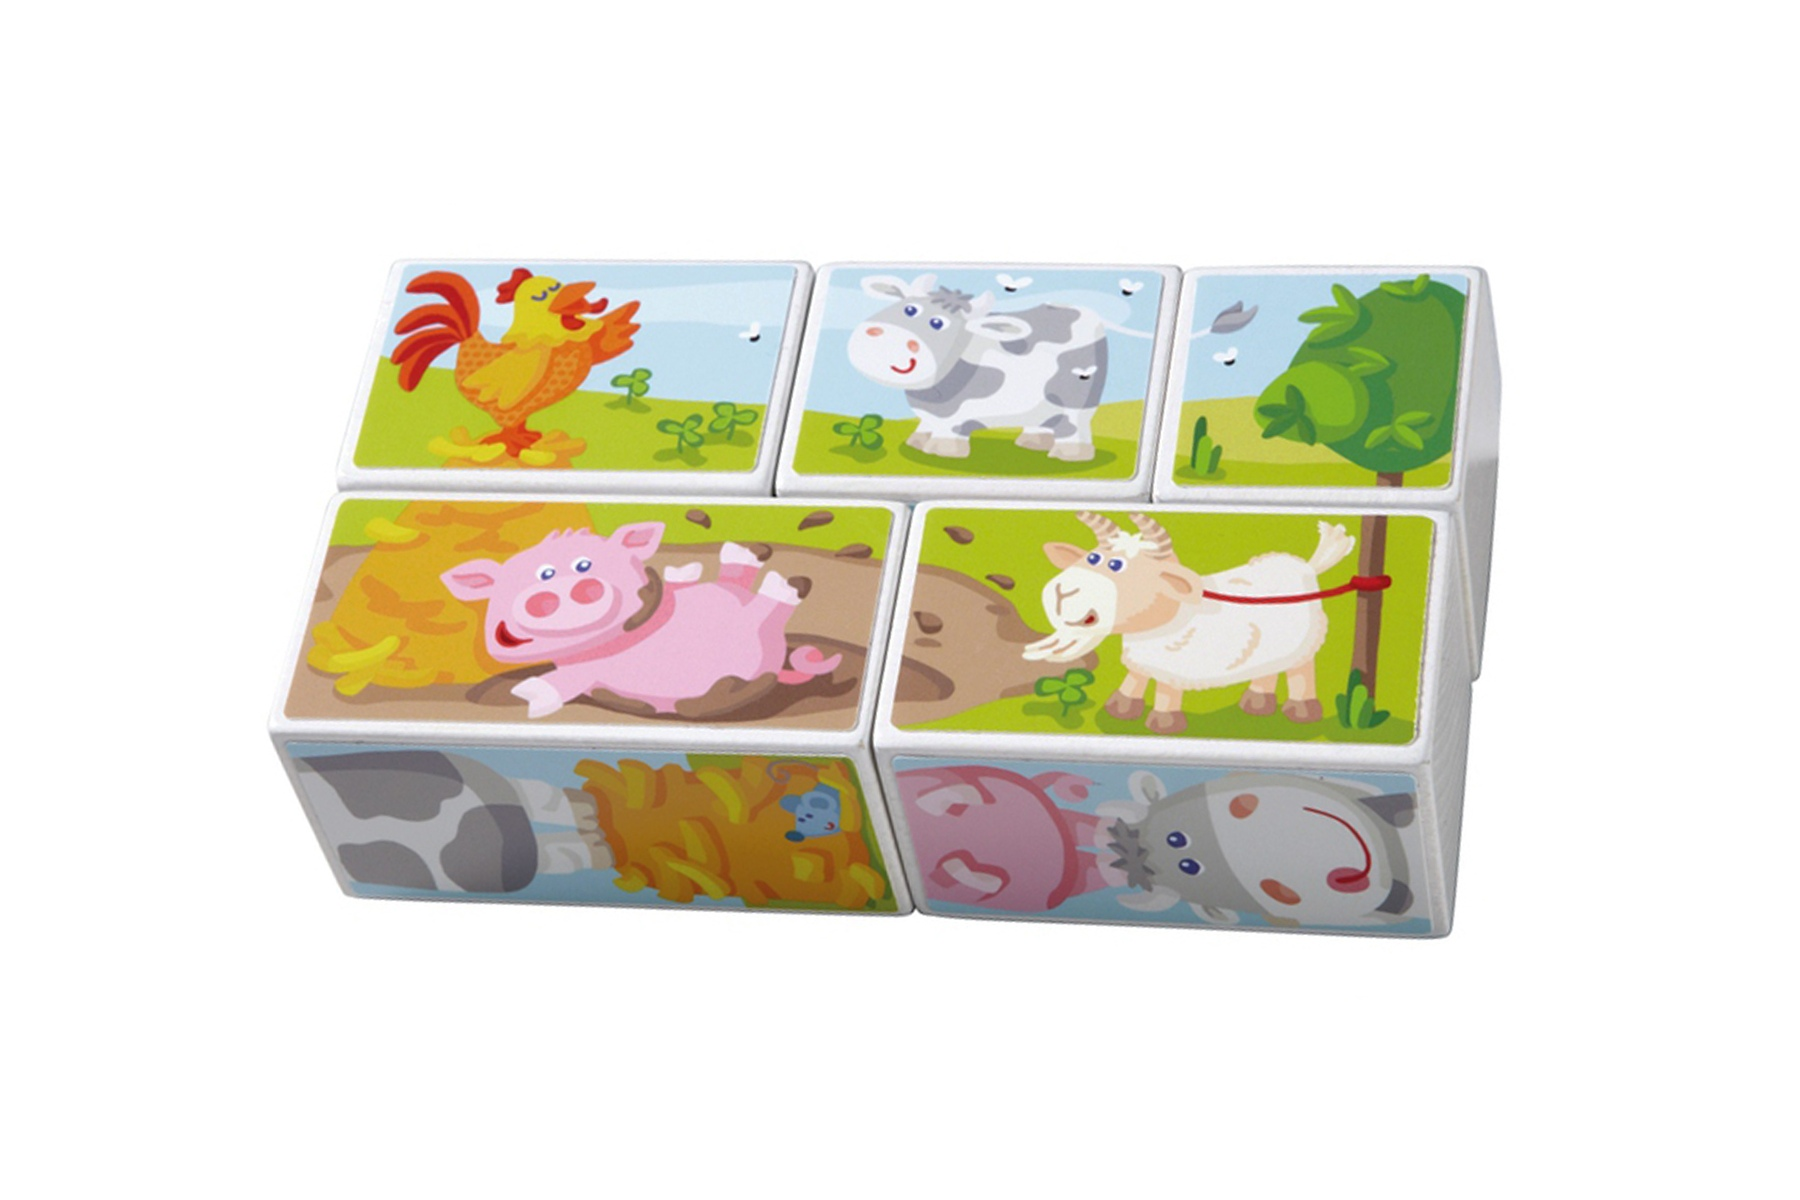 jouets haba puzzle cubes animaux de la ferme 5 cubes. Black Bedroom Furniture Sets. Home Design Ideas